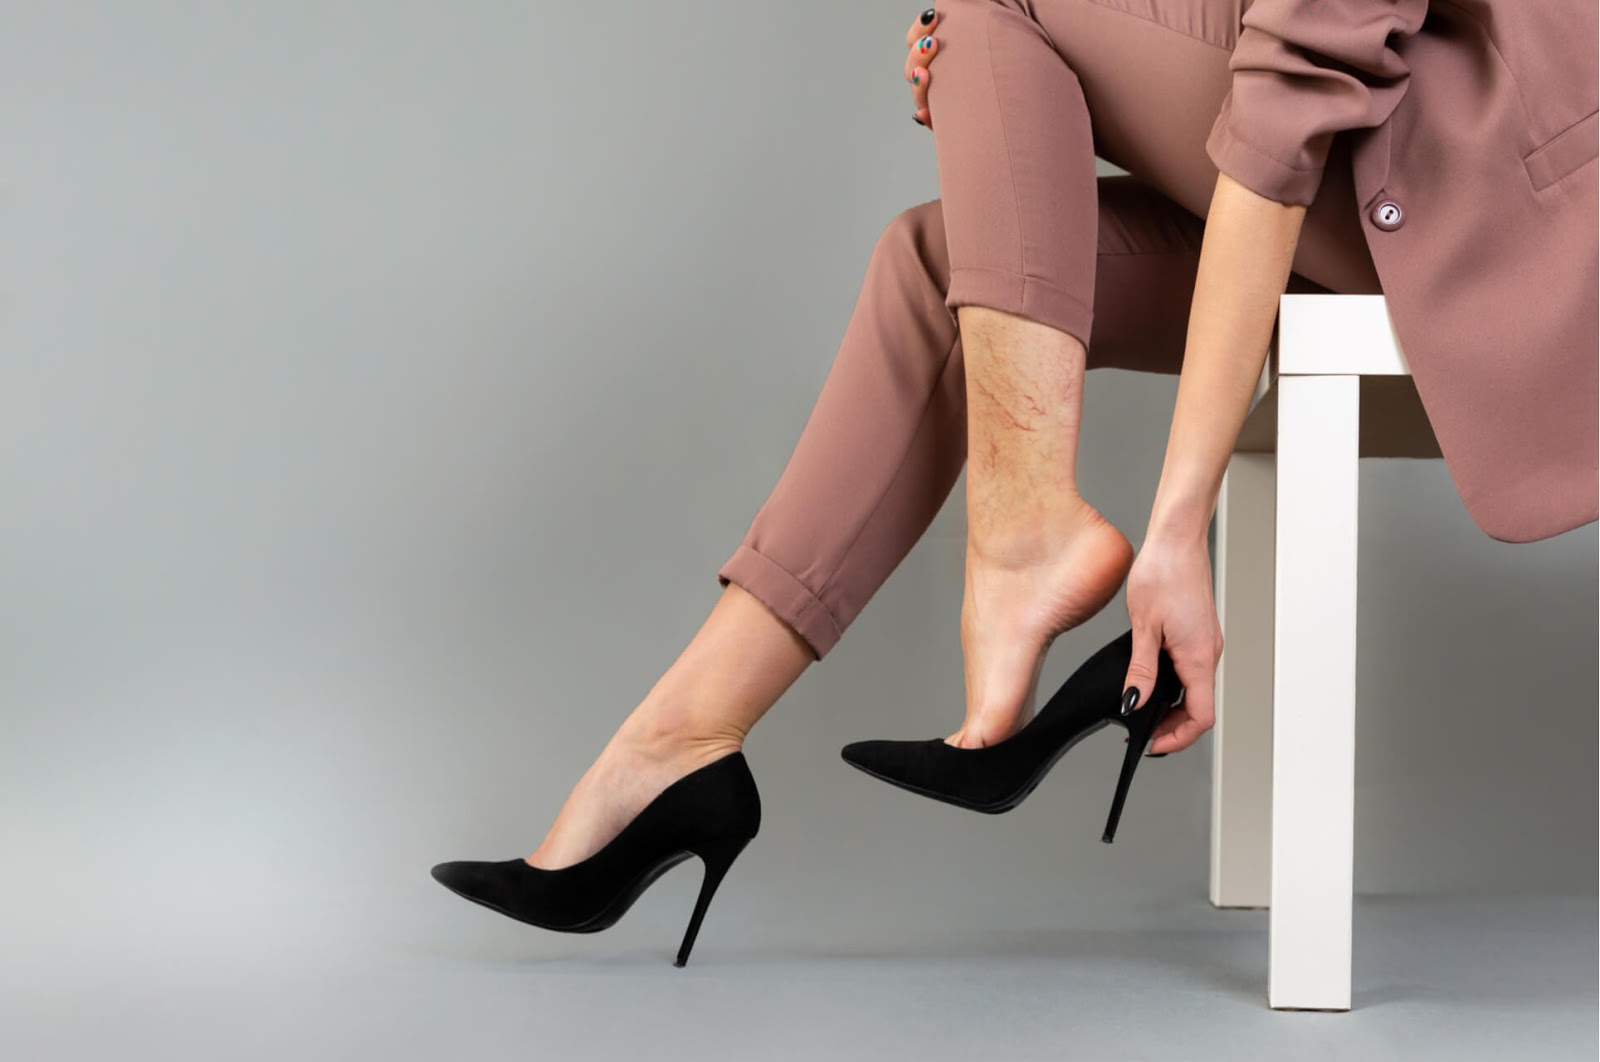 The 5 Professions Most Likely to Cause Varicose Veins and Tips for Prevention